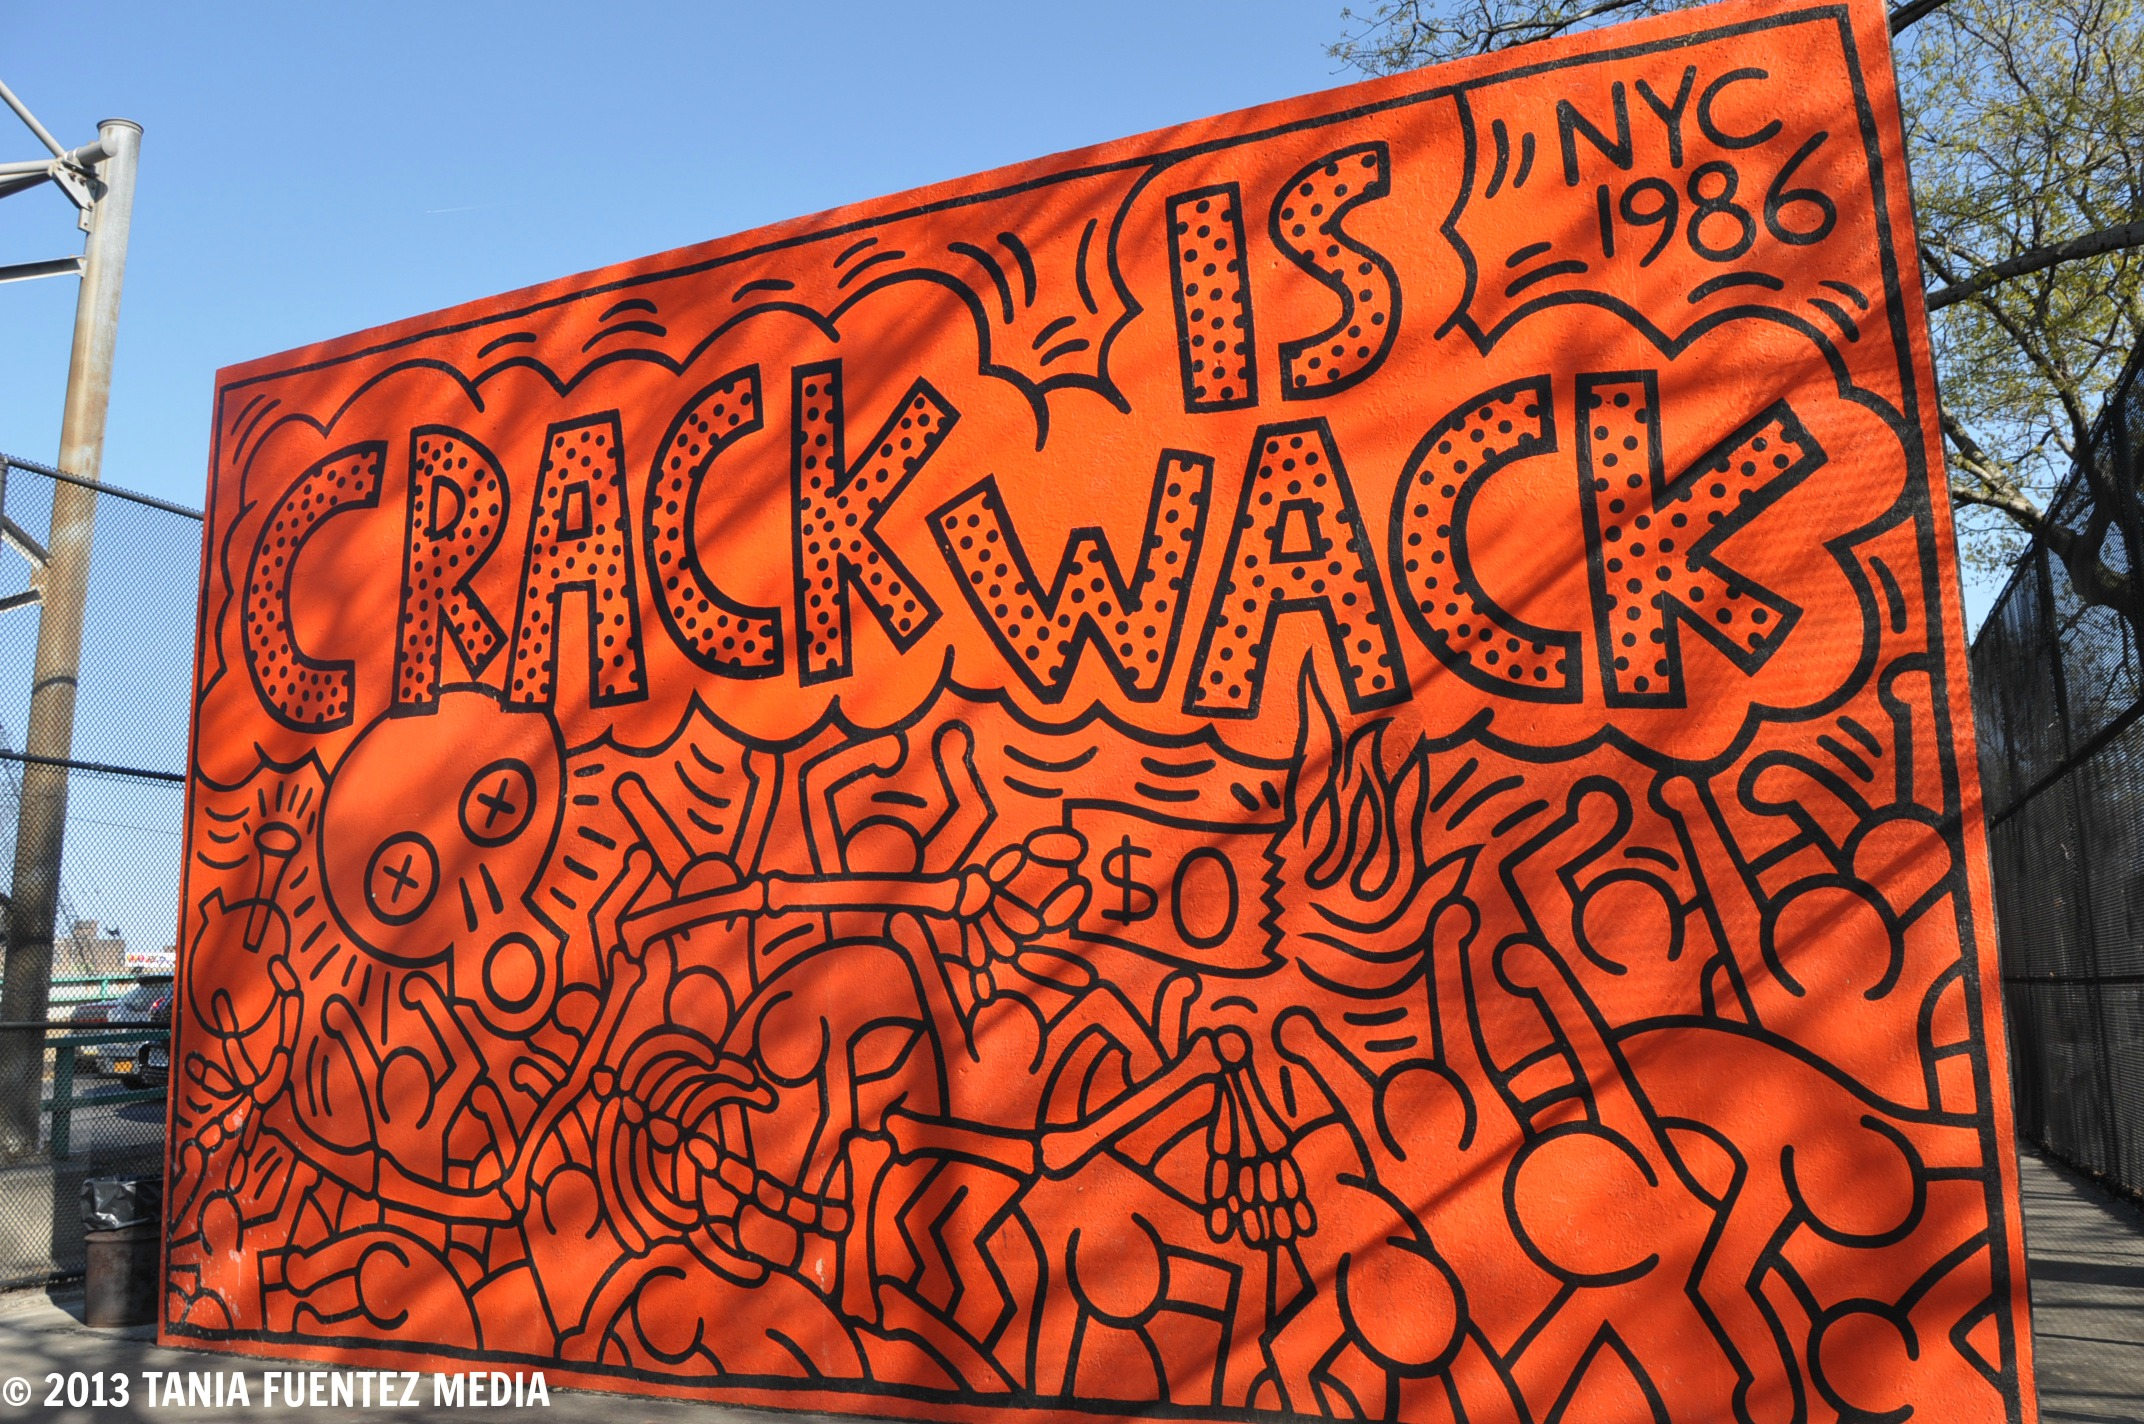 Keith haring 39 crack is wack 39 1986 for Crack is wack mural